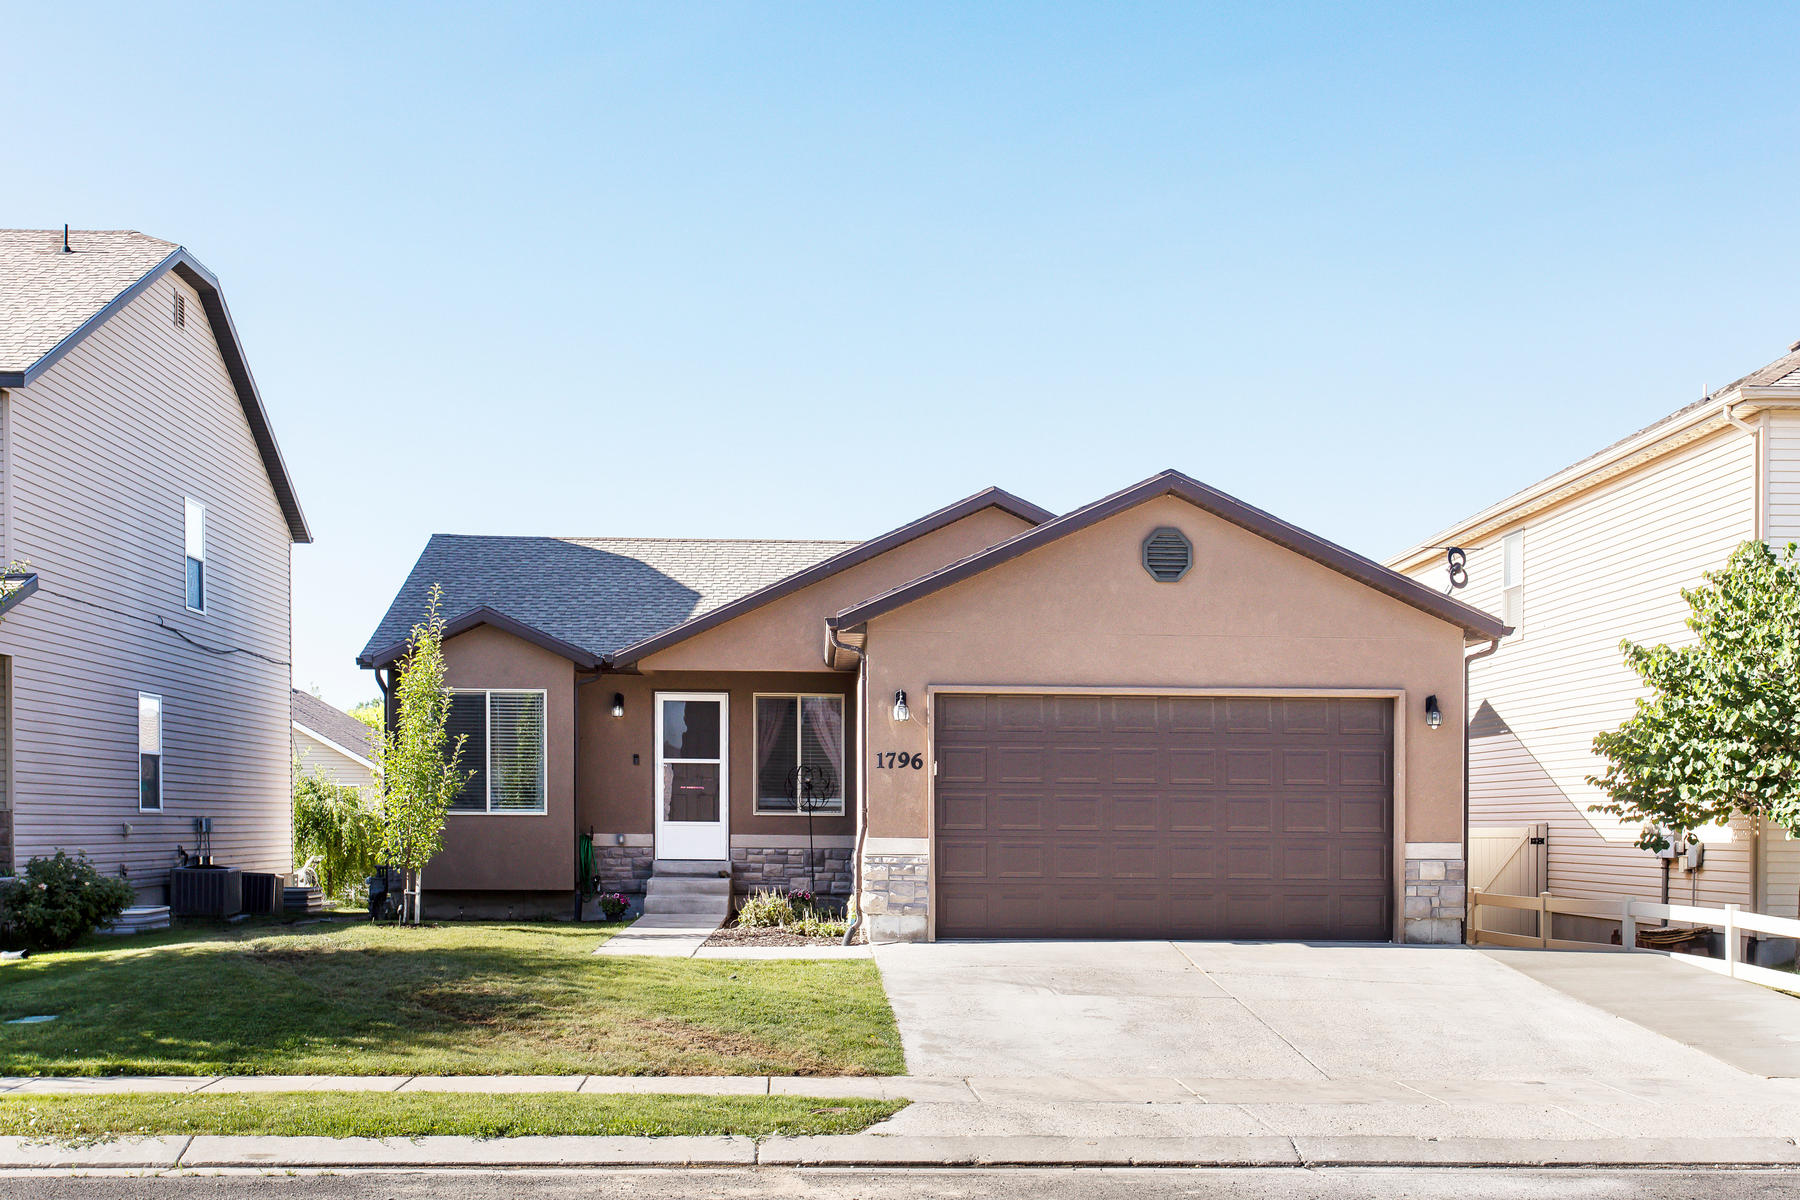 Single Family Homes for Active at Thoughtfully Updated Throughout 1796 E Church Way Eagle Mountain, Utah 84005 United States